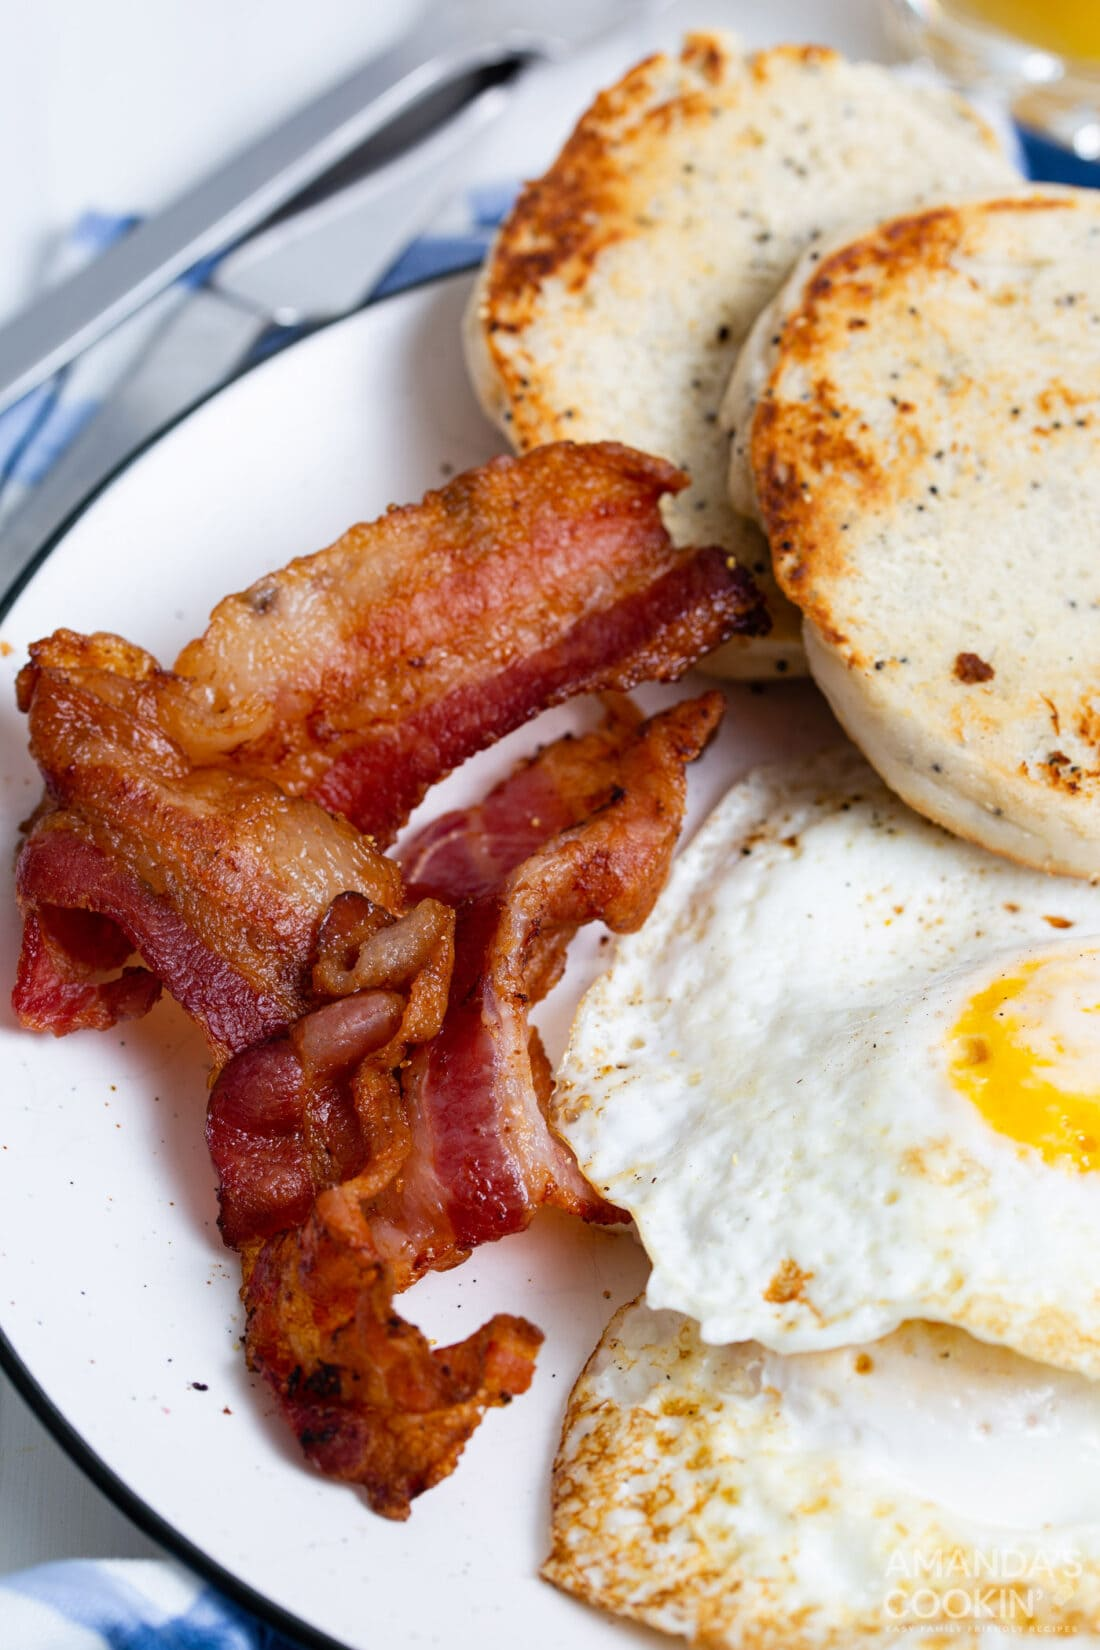 bacon on plate with eggs